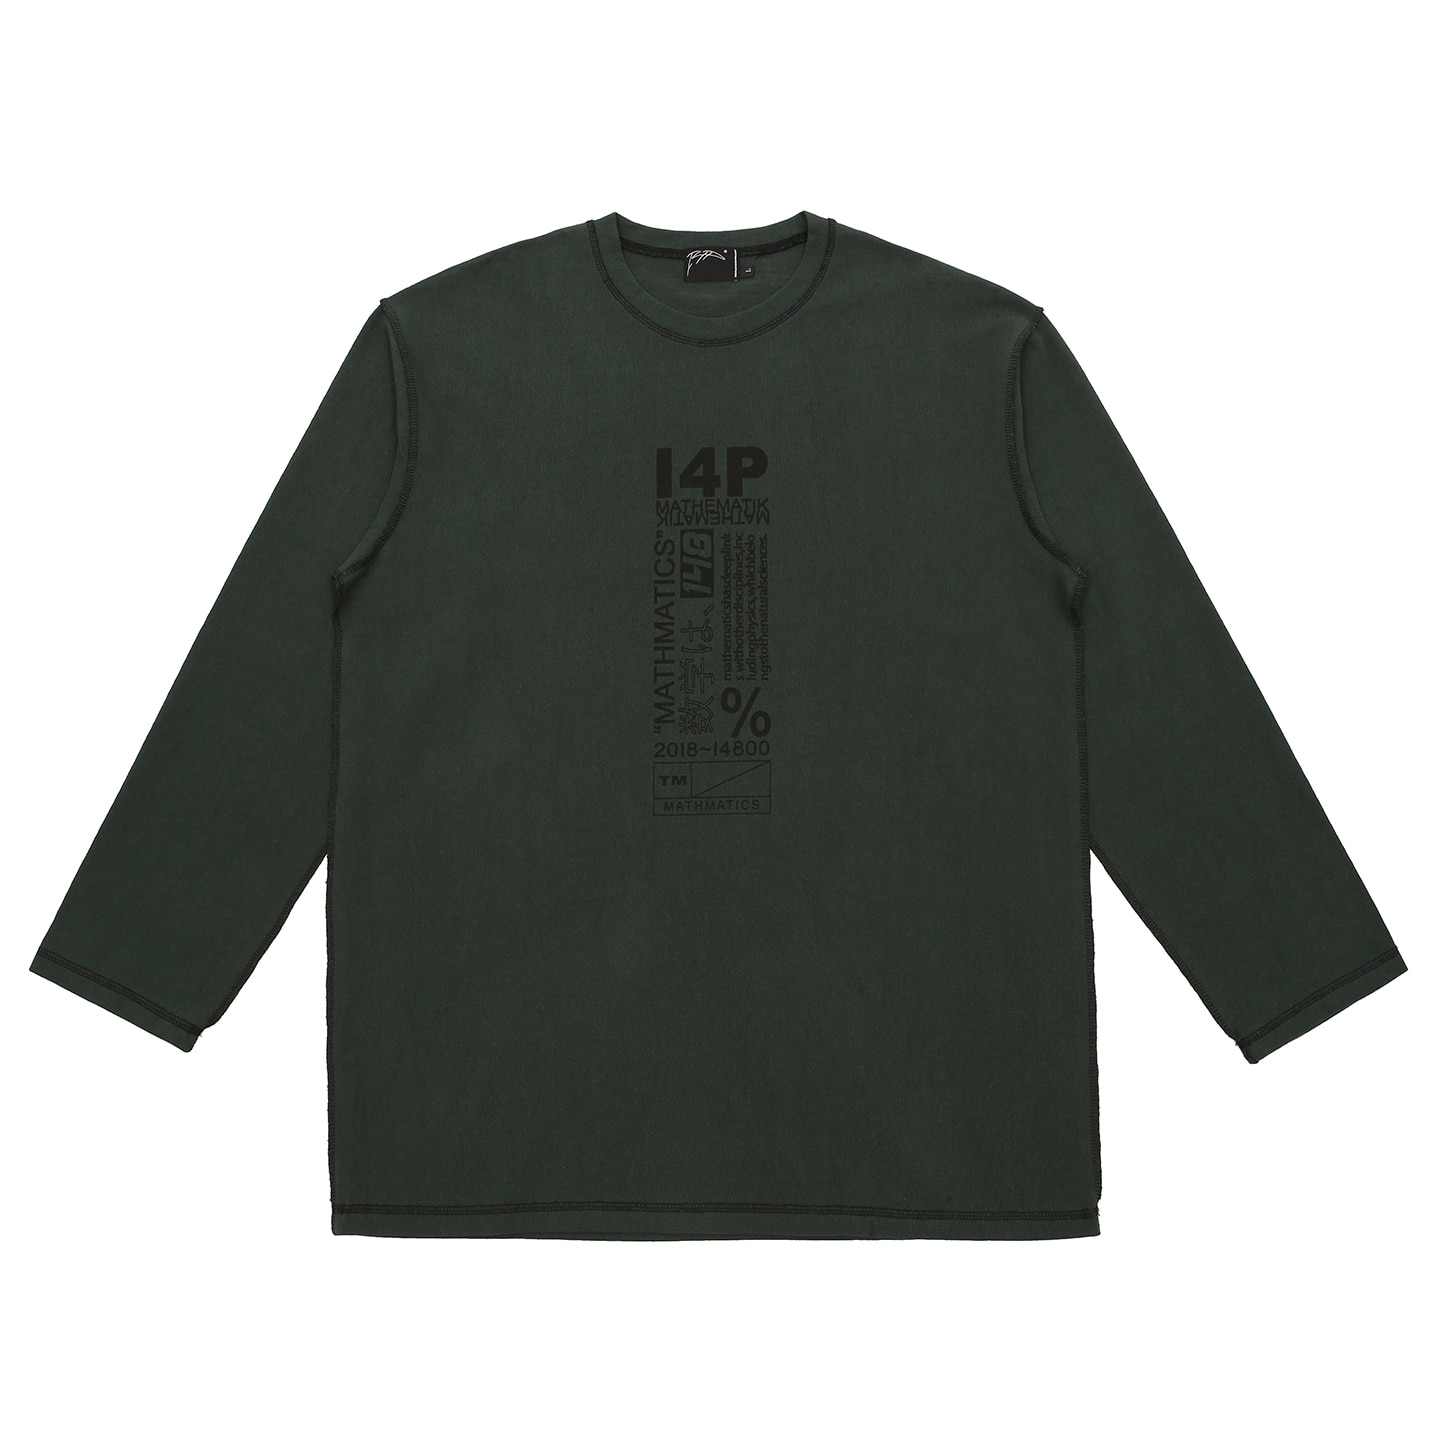 [I4P]I4P Stitch Long Sleeve Green